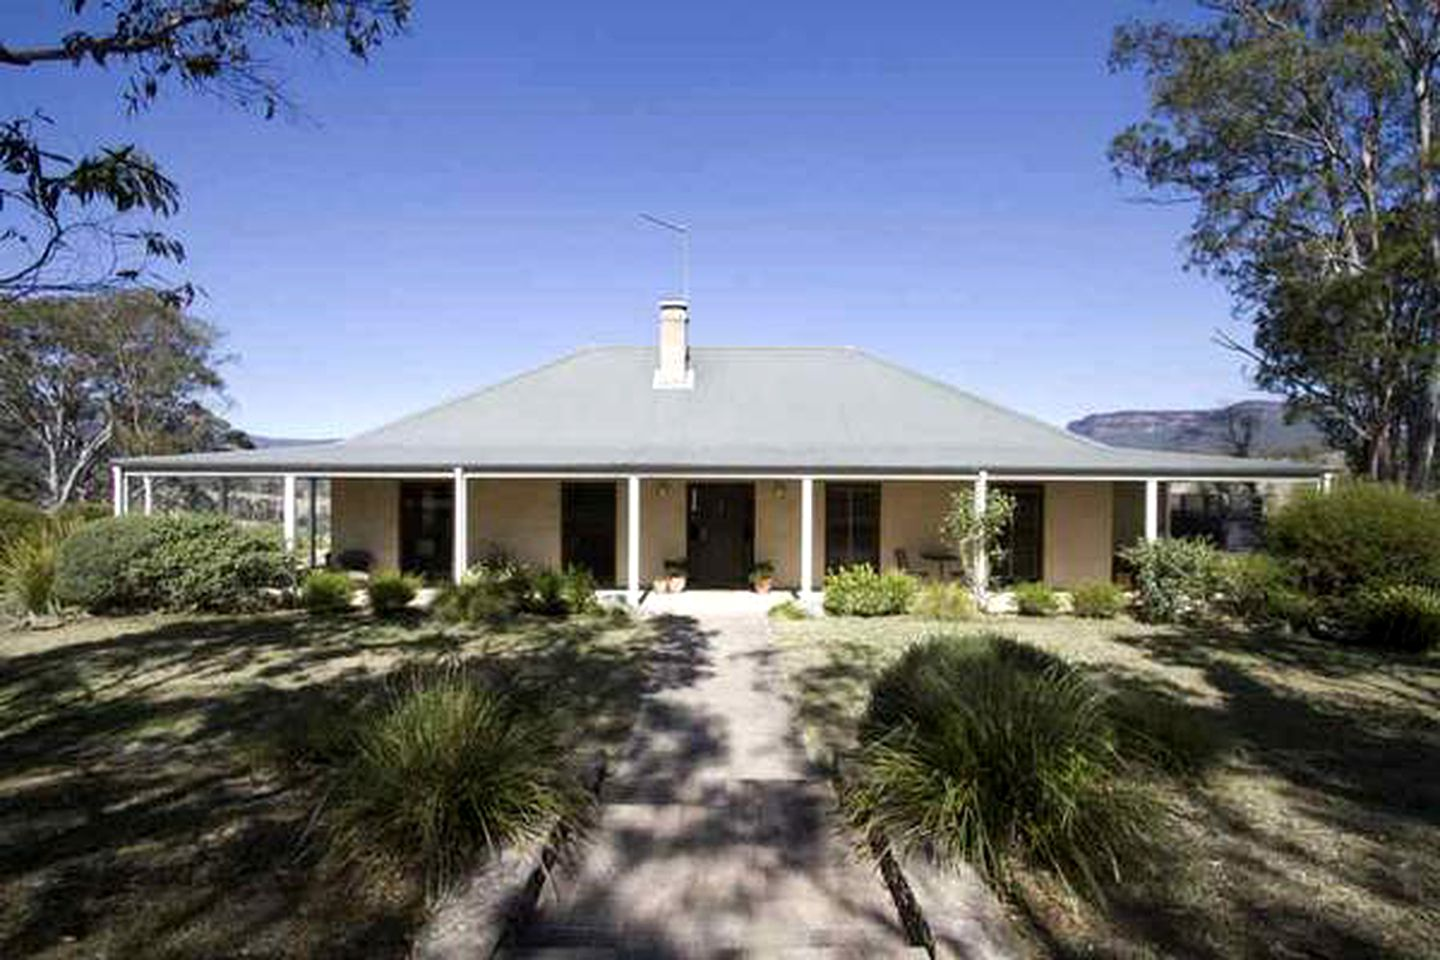 Holiday cottage in Megalong Valley, New South Wales